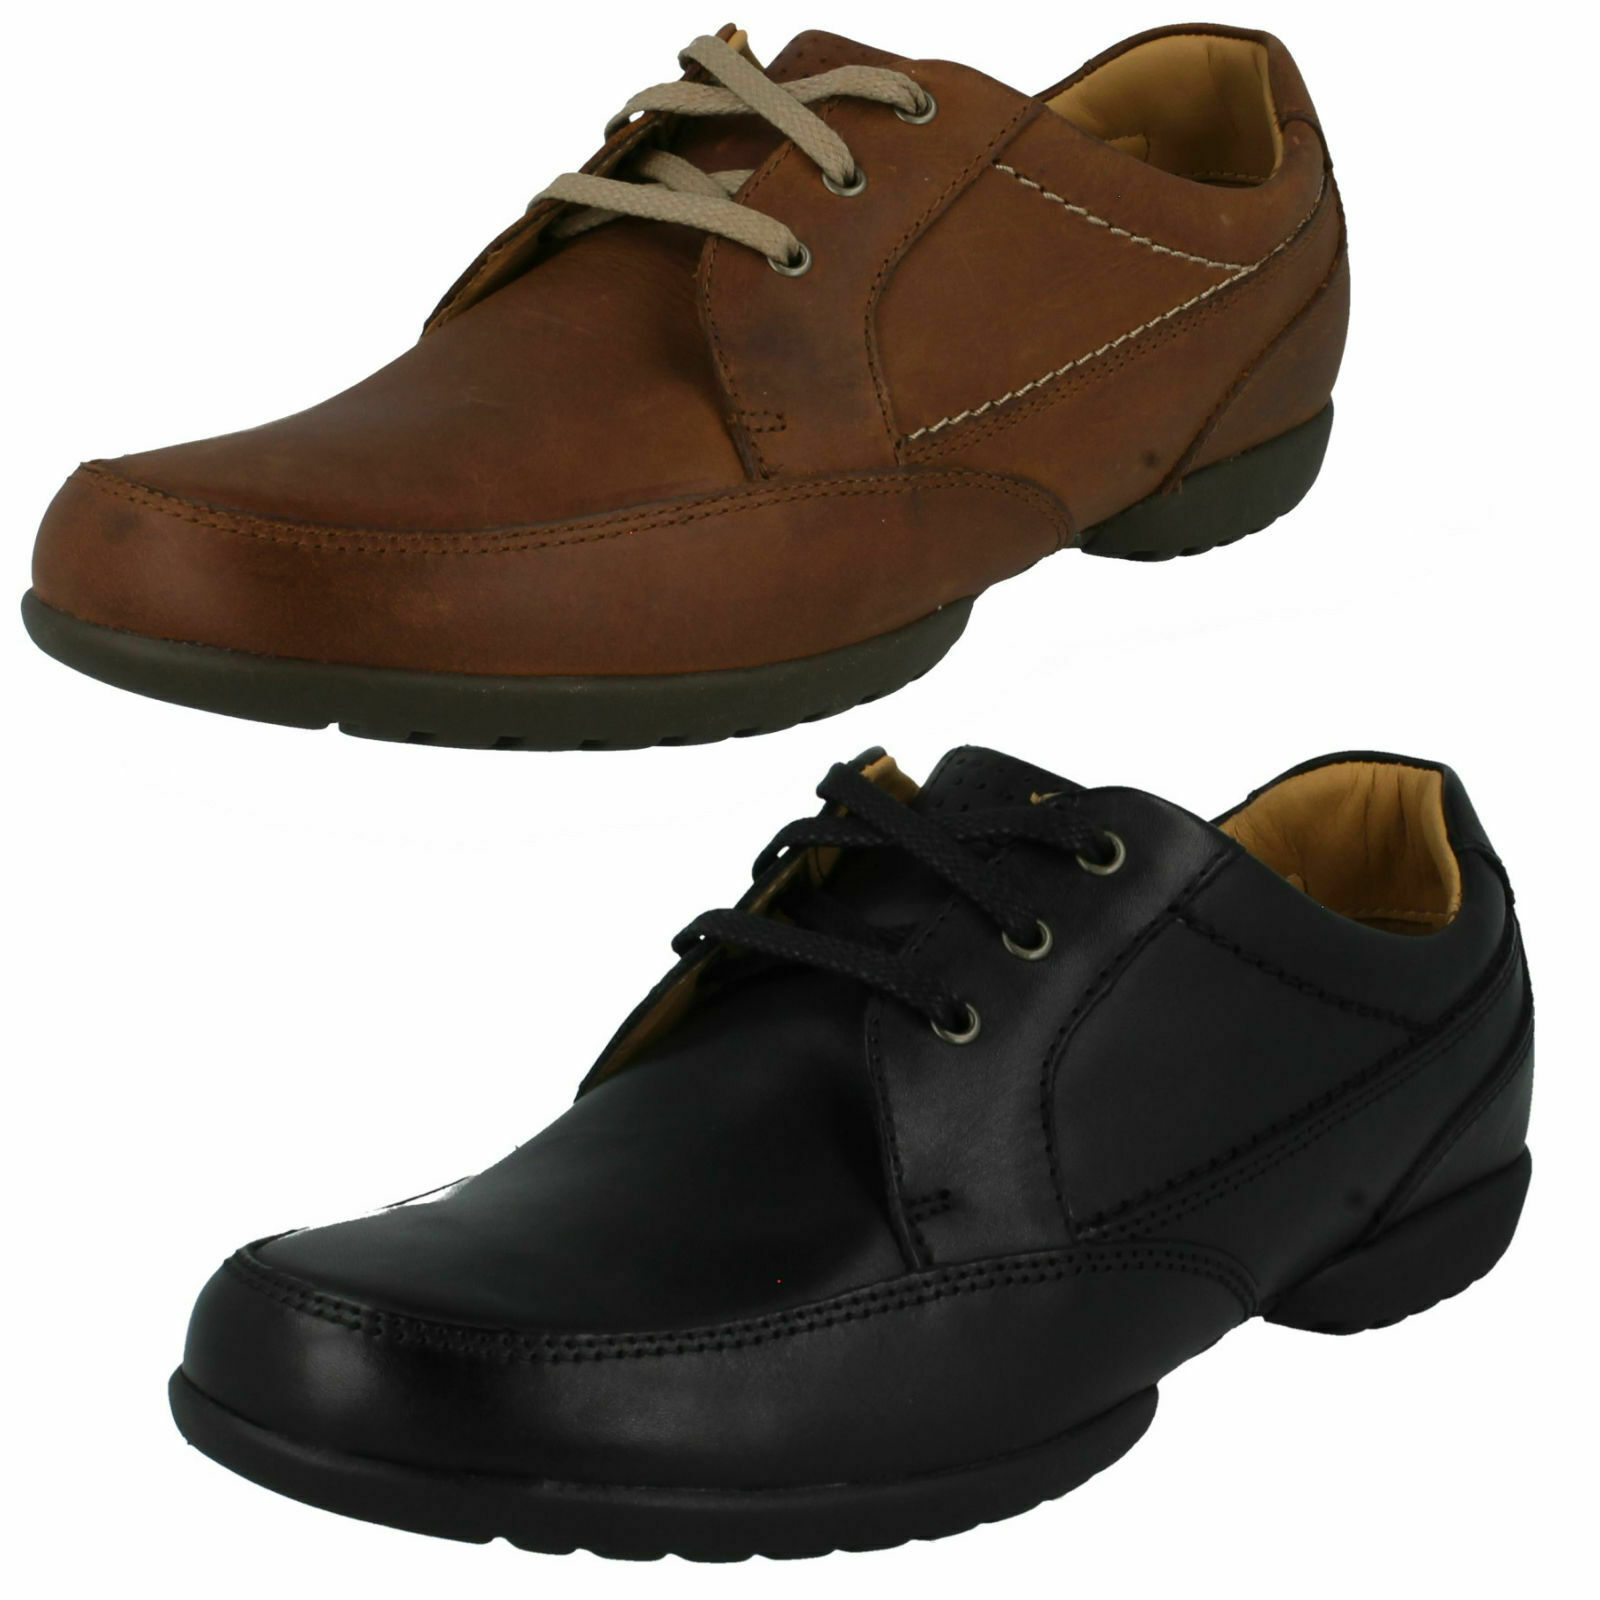 MENS CLARKS LEATHER EVERYDAY WORK CASUAL WIDE FIT LACE UP SHOES RECLINE OUT